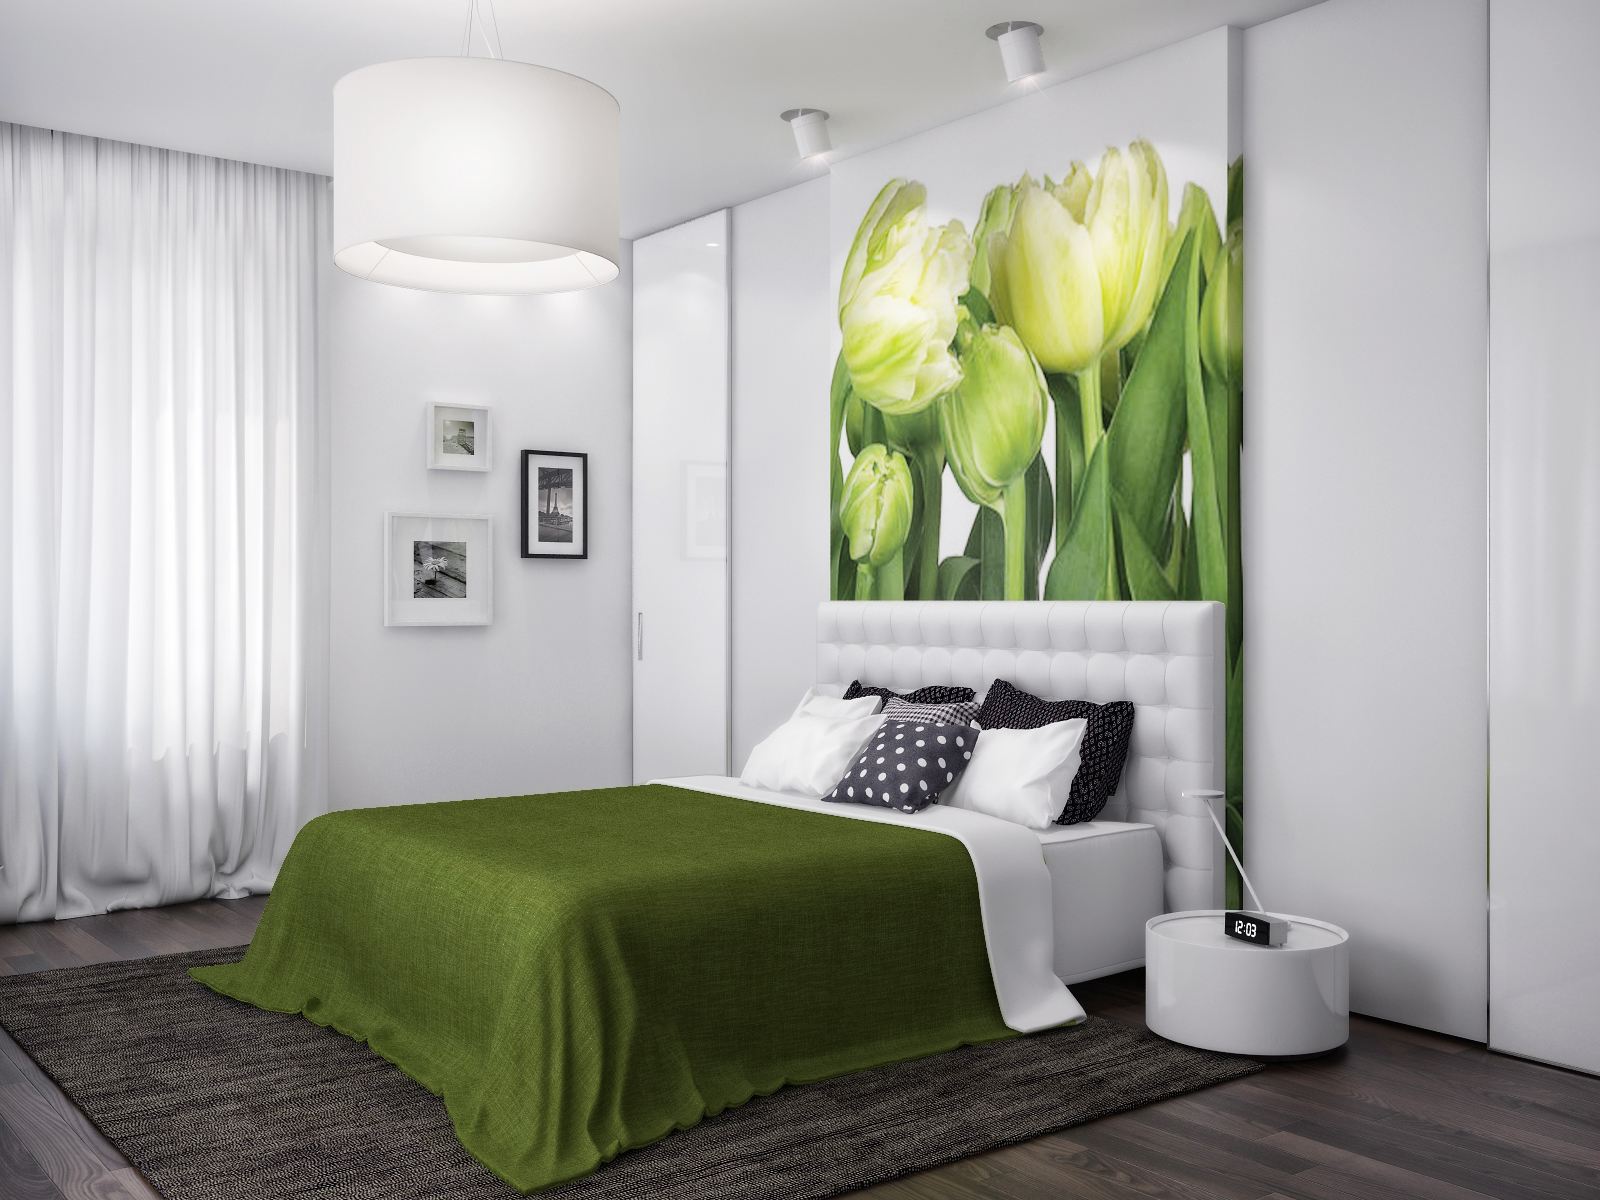 Bedroom Ideas Nature green white nature bedroom | interior design ideas.